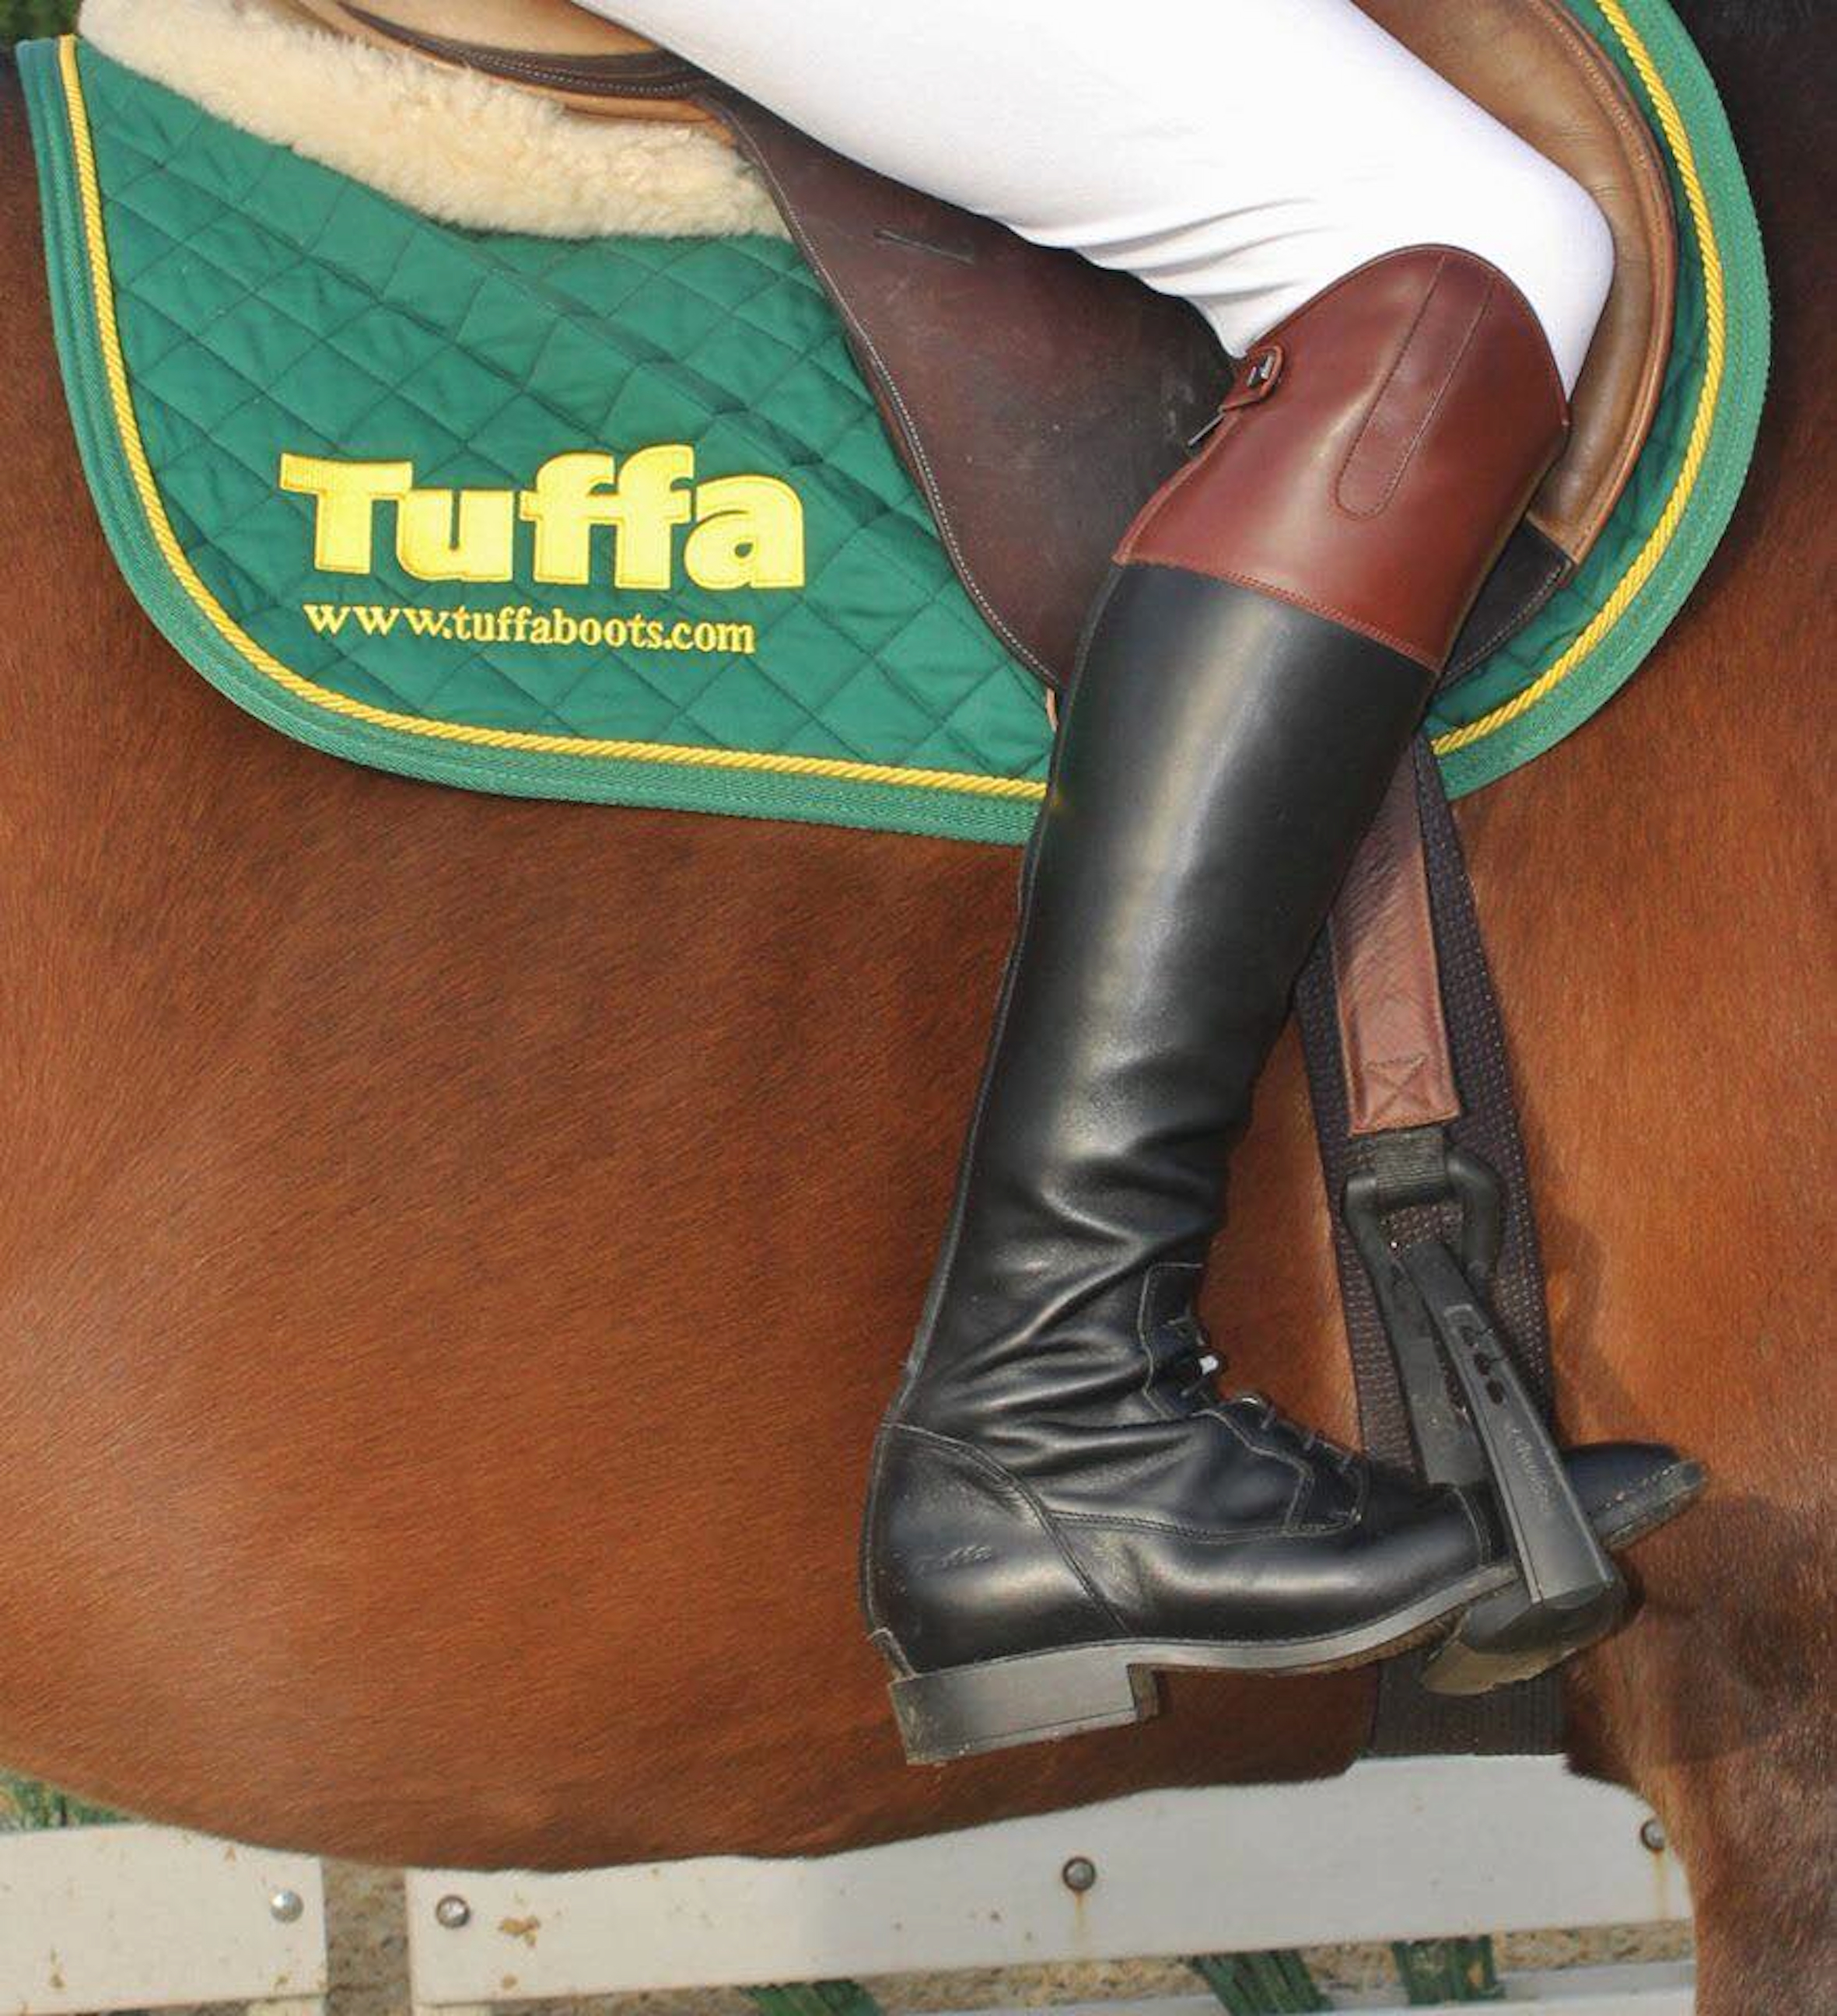 Tim Stockdale Boot2 - Tuffa Footwear launches new made to measure boots